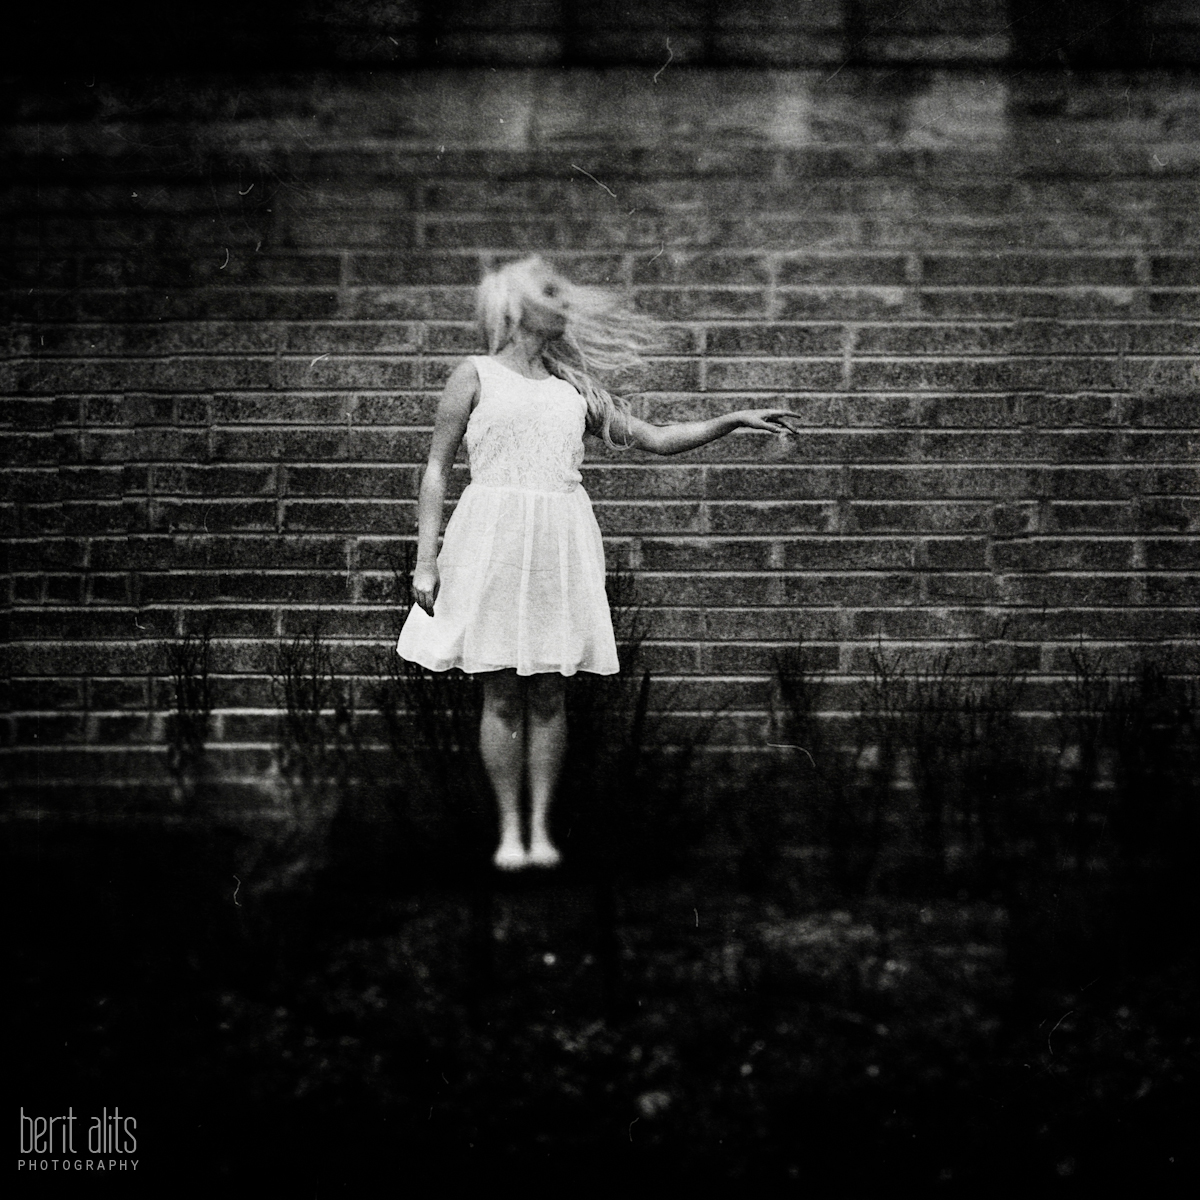 02_dancer_white_dress_black_and_white_artistic_conceptual_nikon_d800_50_mm_f1.4_clonmel_photography_photographer_ireland_tipperary_dreamy_